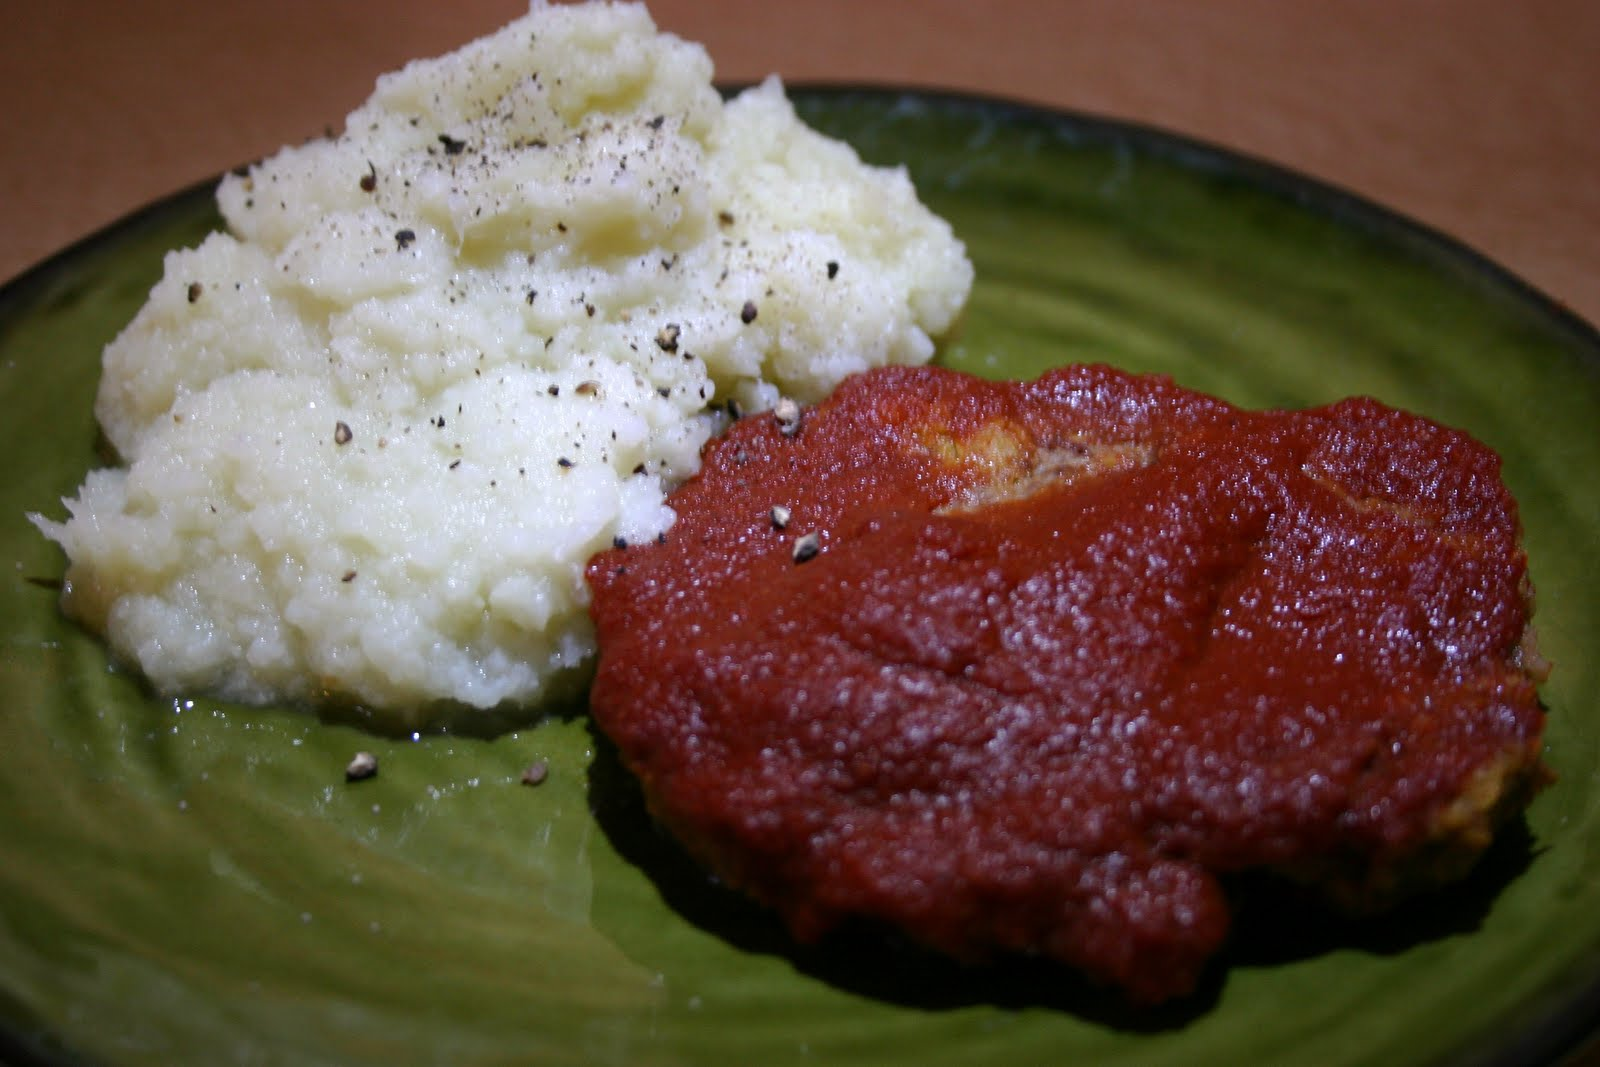 ... P2) RECIPE #5: An American Classic: MEATLOAF & HOMEMADE BBQ SAUCE